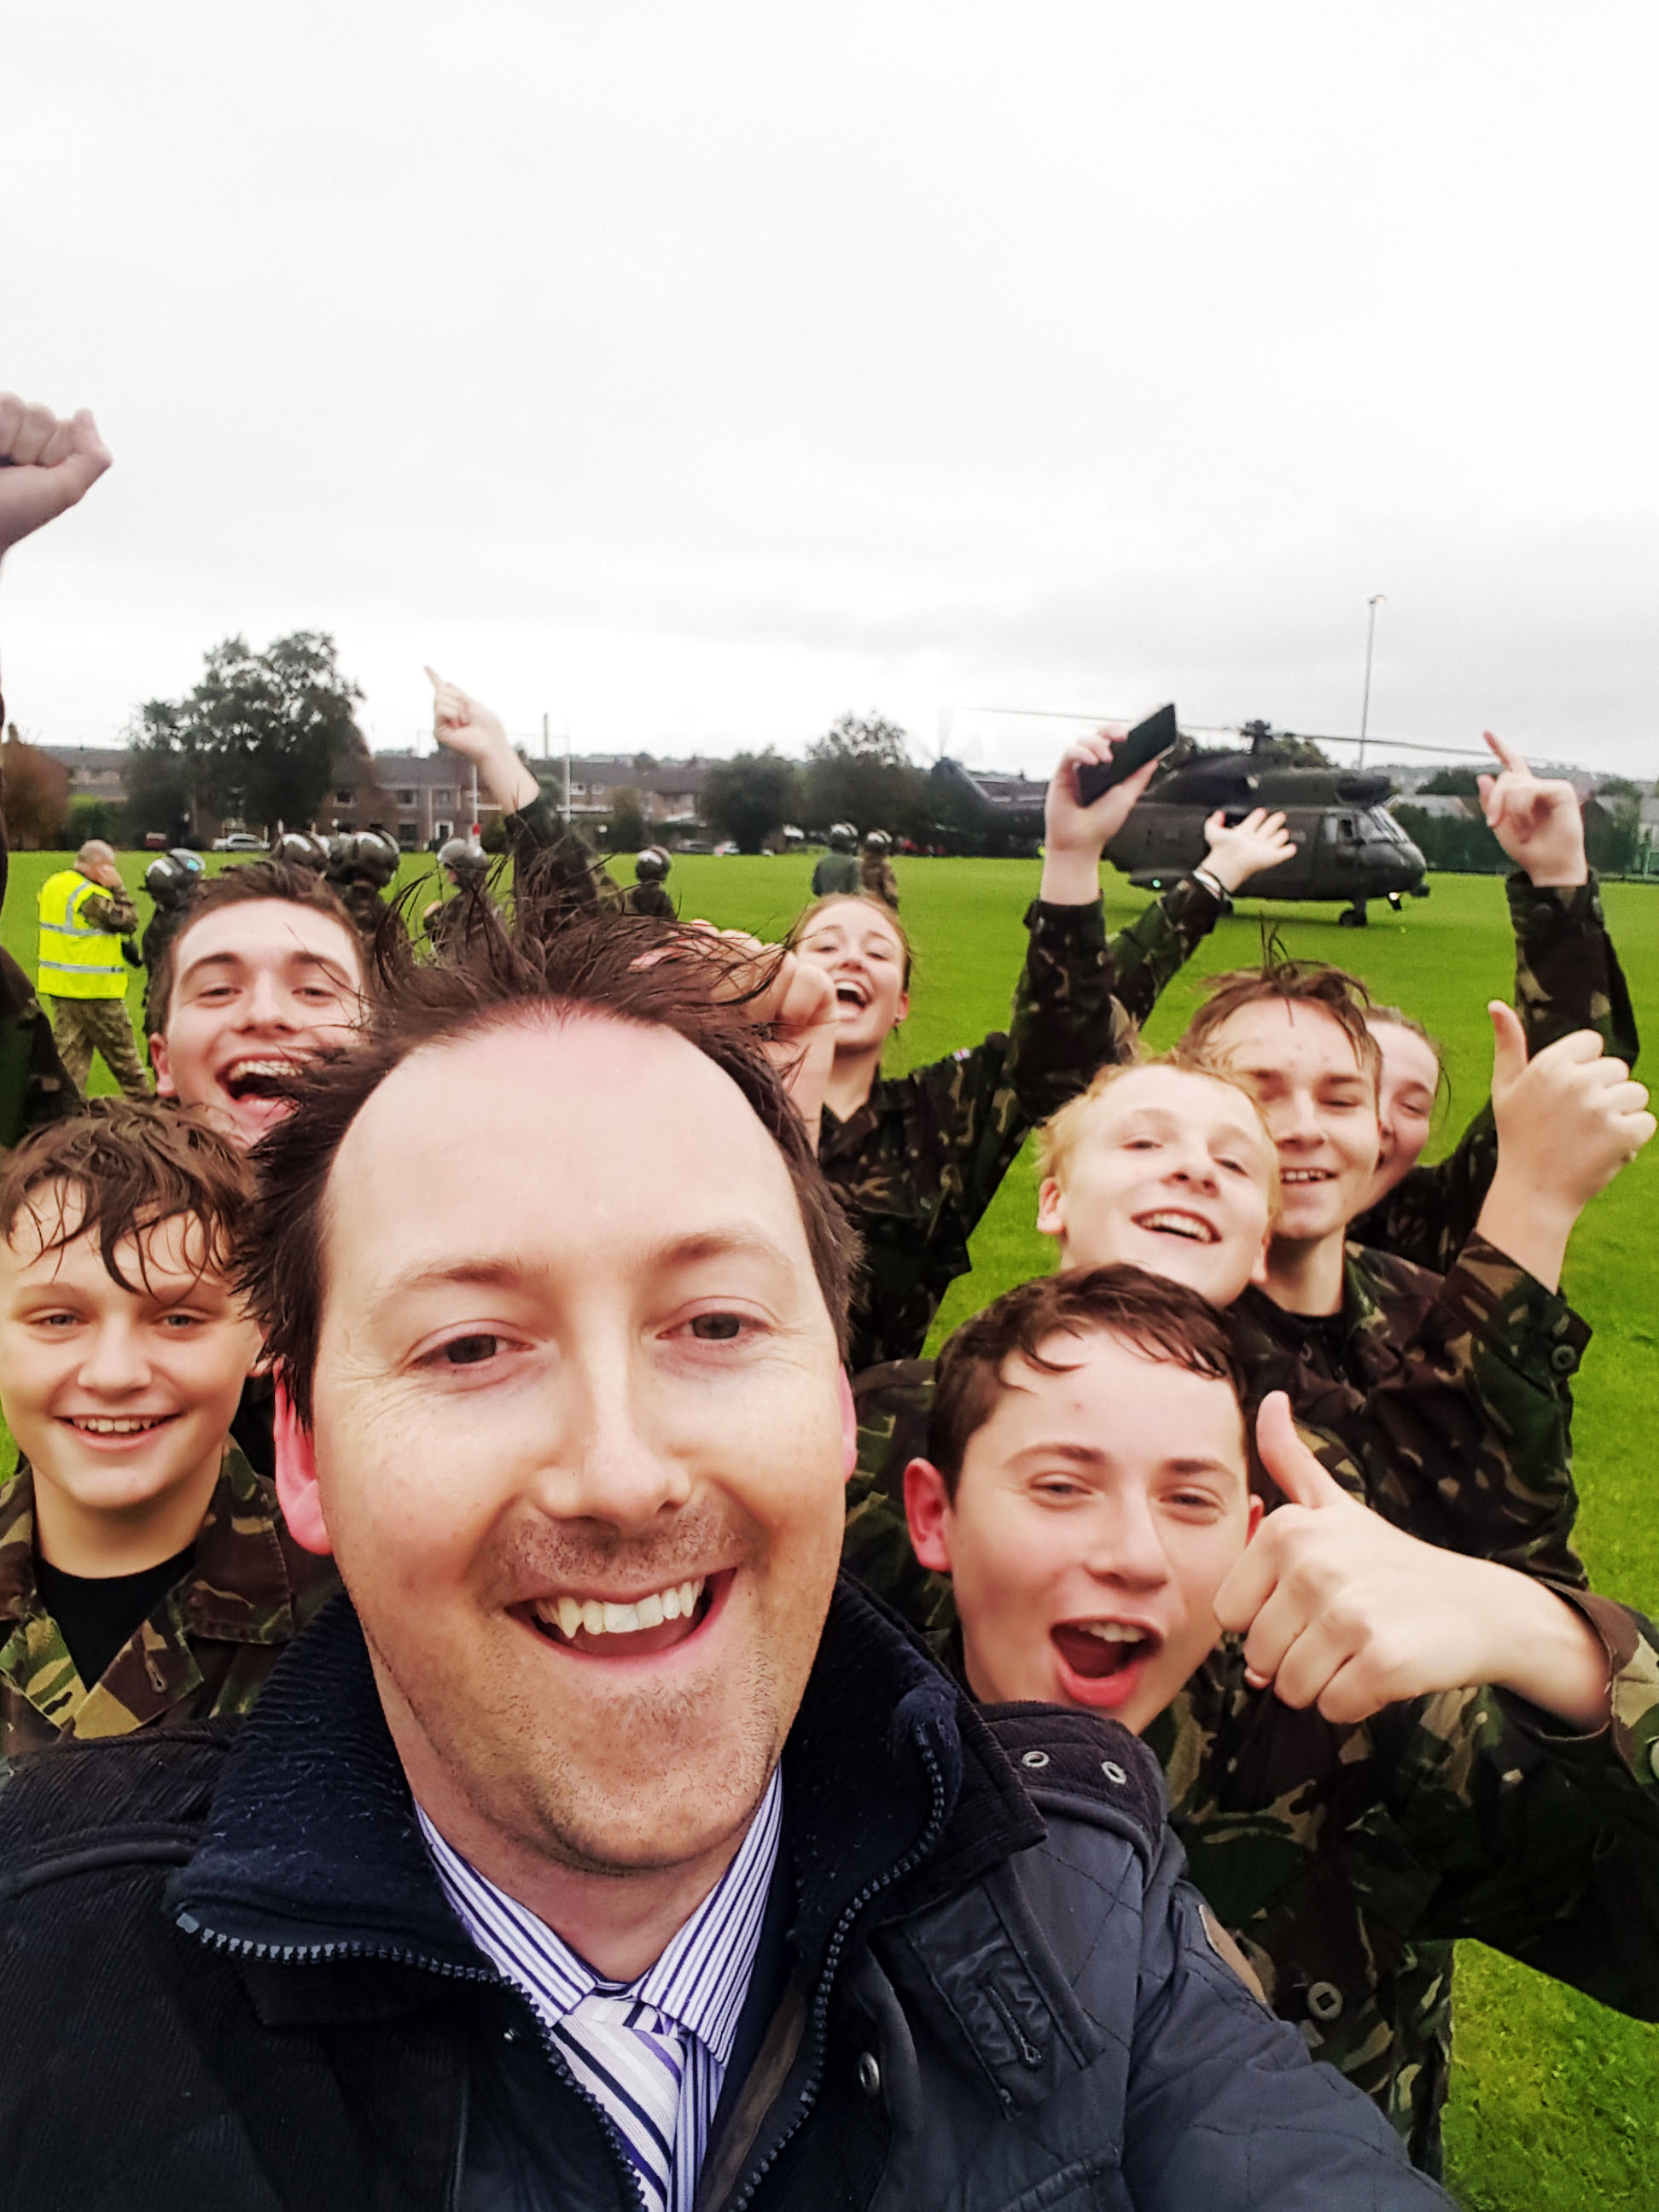 Flying in a helicopter makes cadets happy!